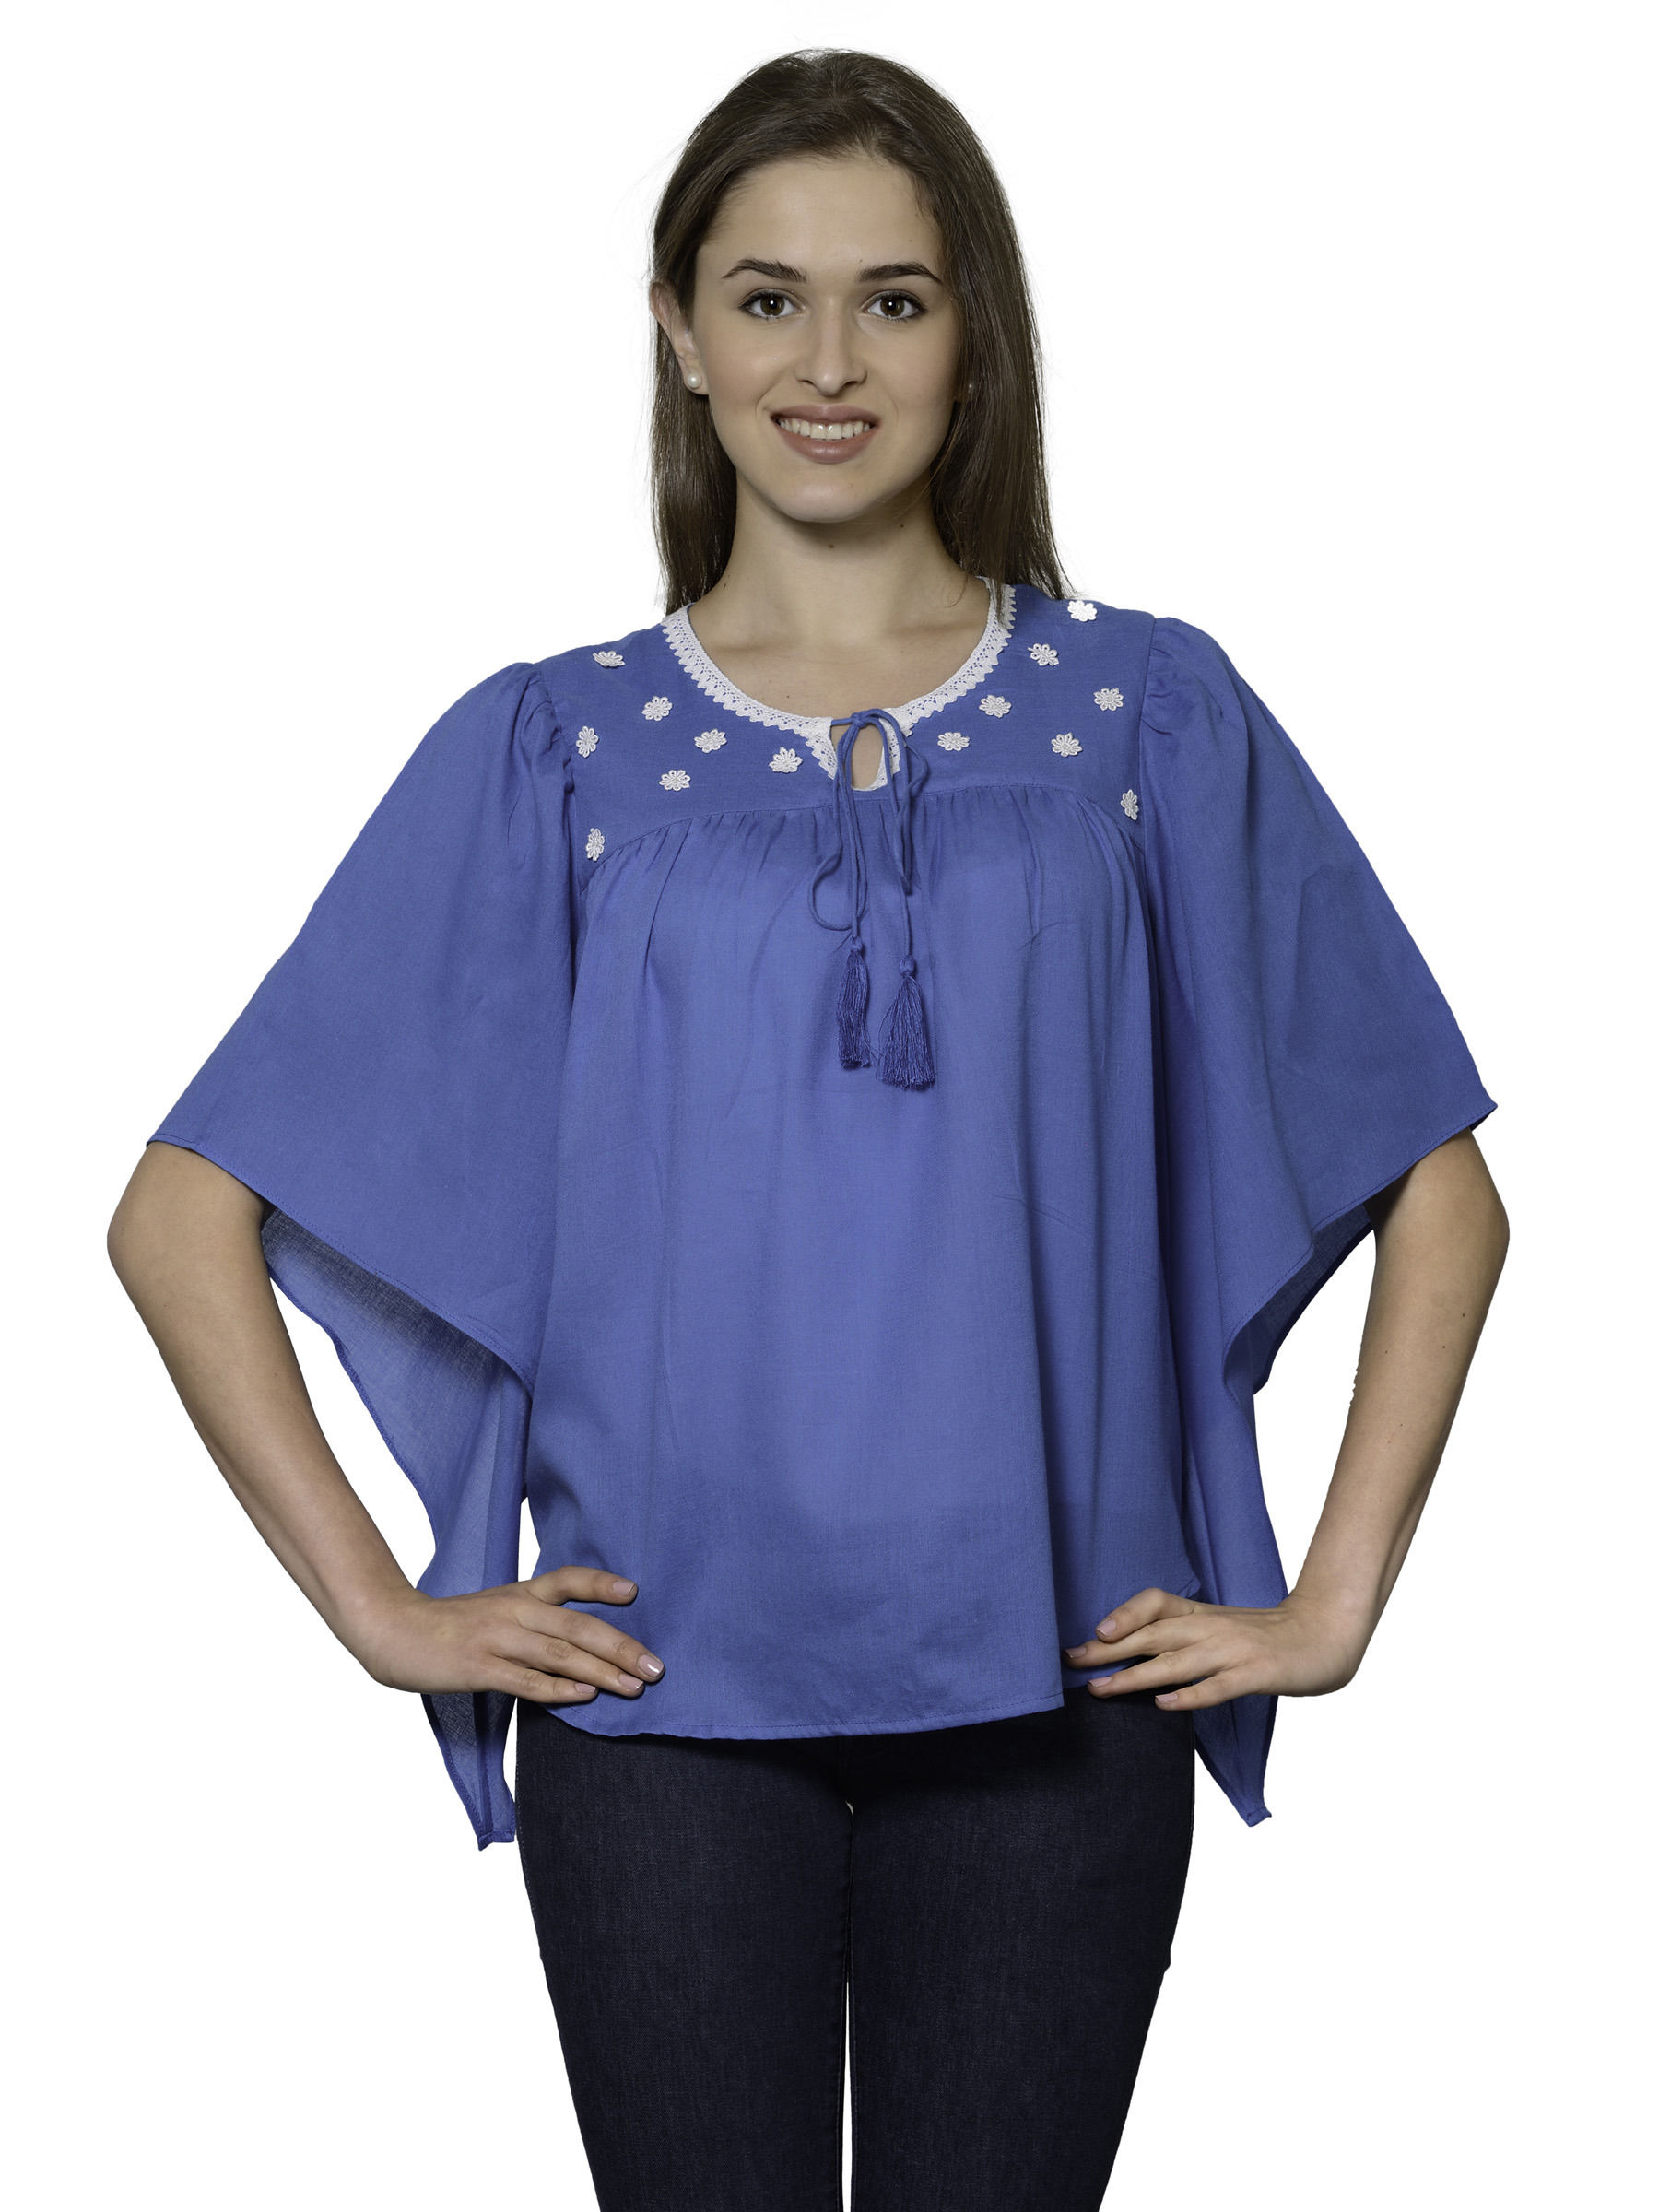 Patrorna Turquoise Butterfly Sleeve Soft Cotton Crop Top (6PA002TB), 4xl